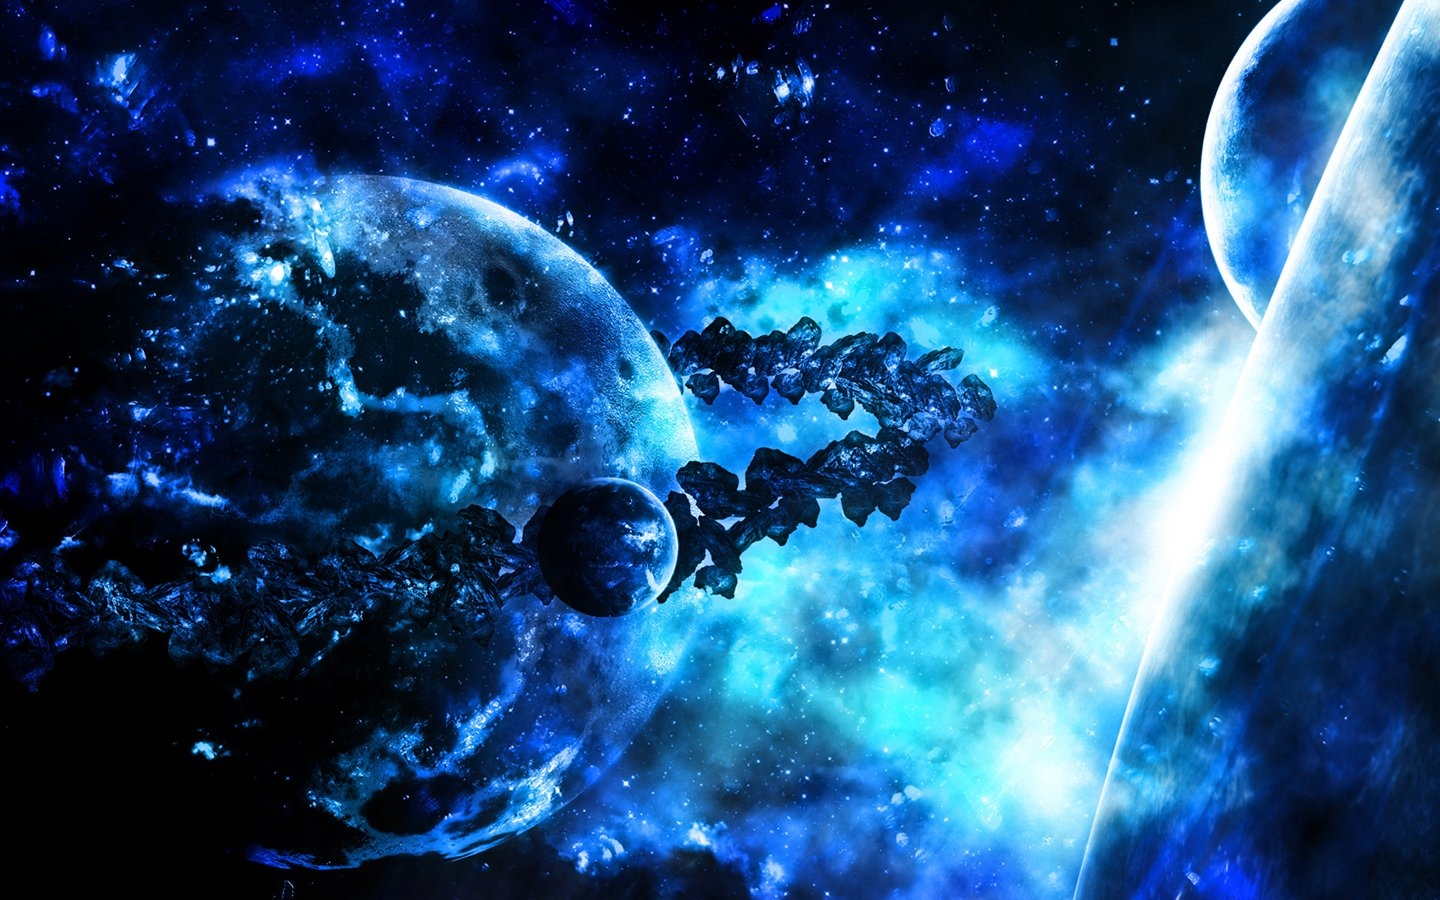 Awesome Space Wallpapers HD - WallpaperSafari